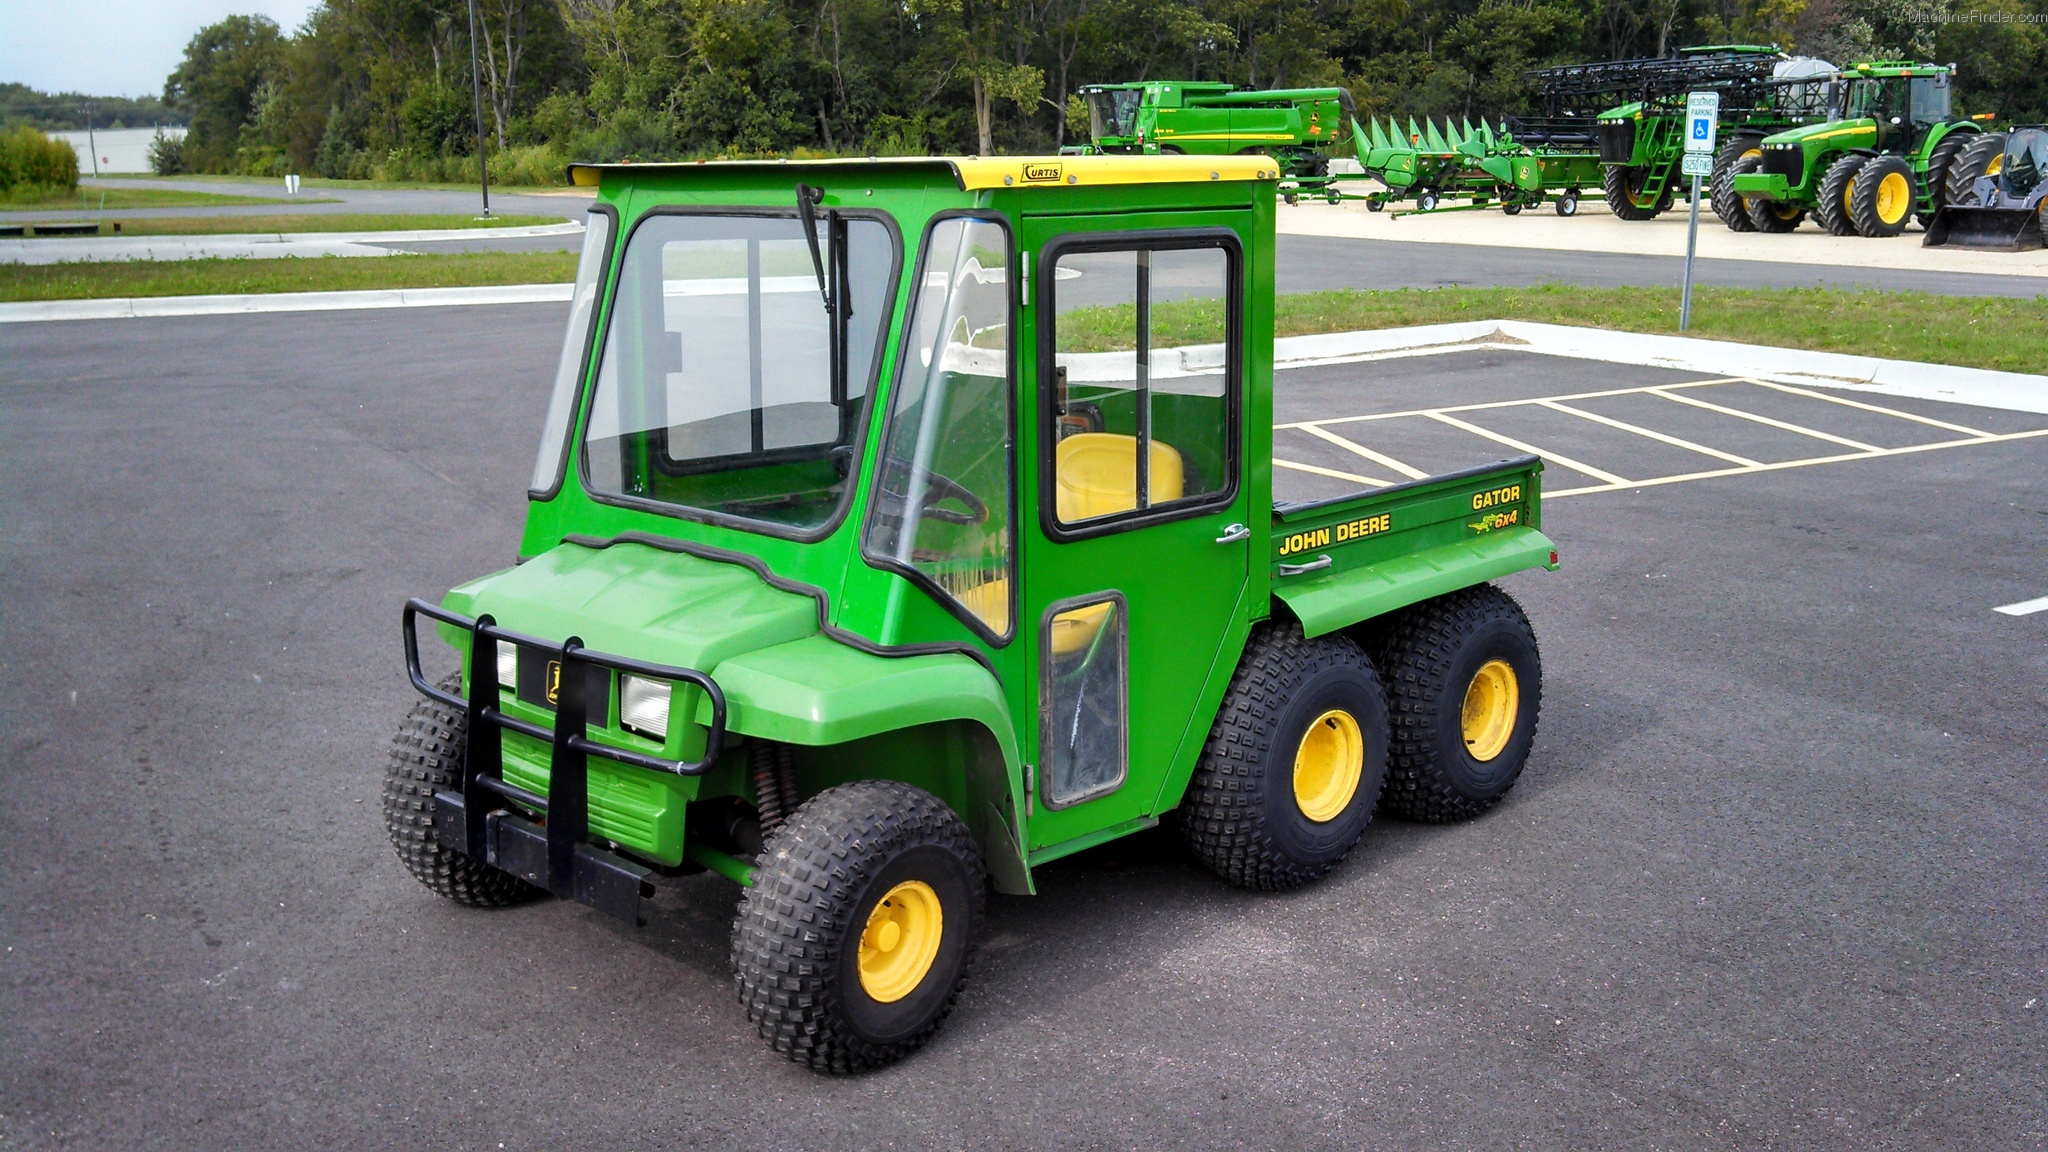 1998 john deere gator 6x4 atv 39 s and gators john deere. Black Bedroom Furniture Sets. Home Design Ideas